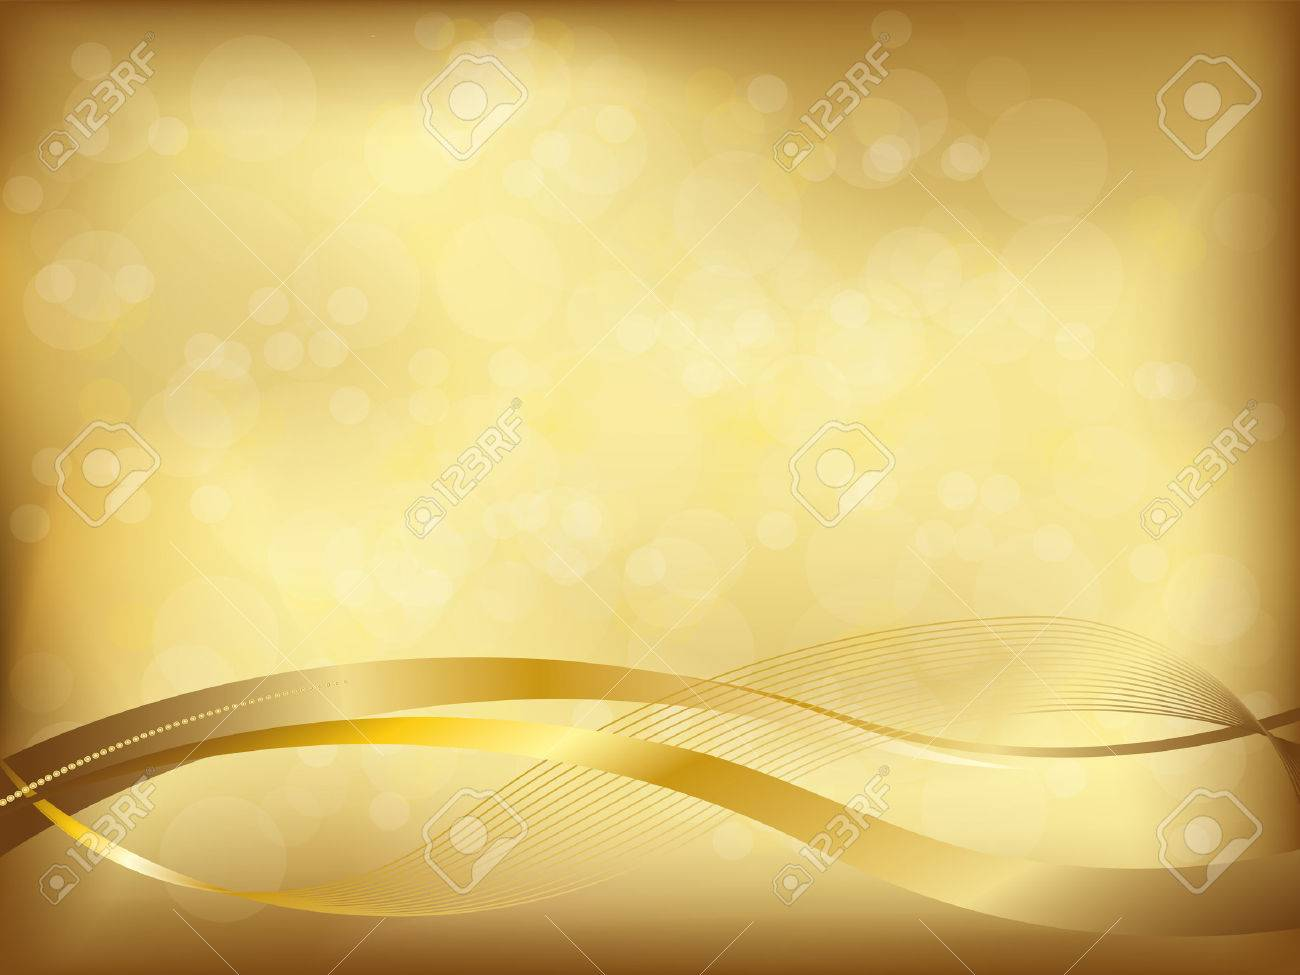 elegant golden background with blur and wavy shapes - 47200961